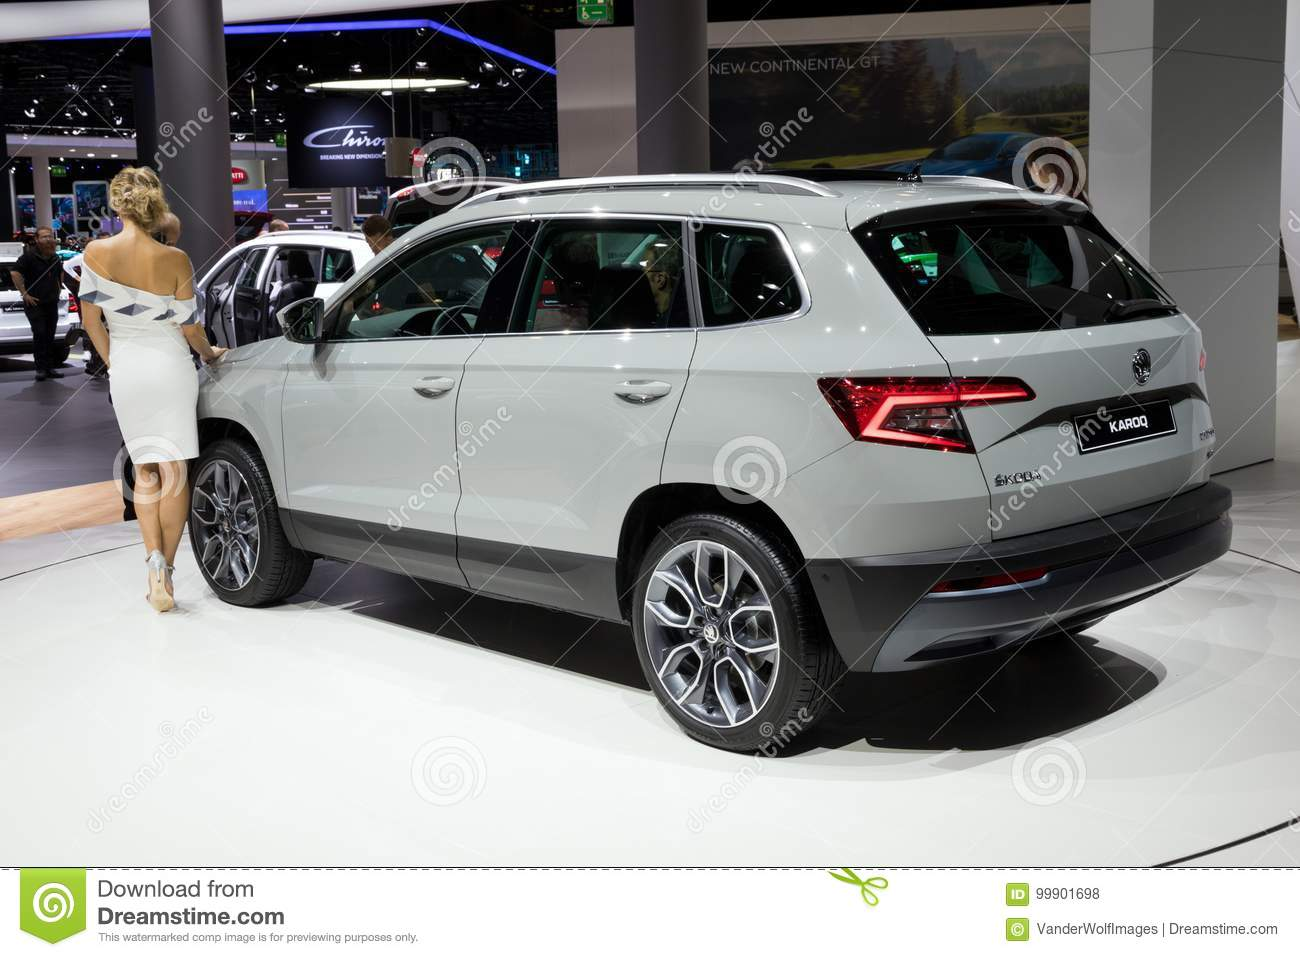 New 2018 Skoda Karoq Suv Car Editorial Stock Photo Image Of